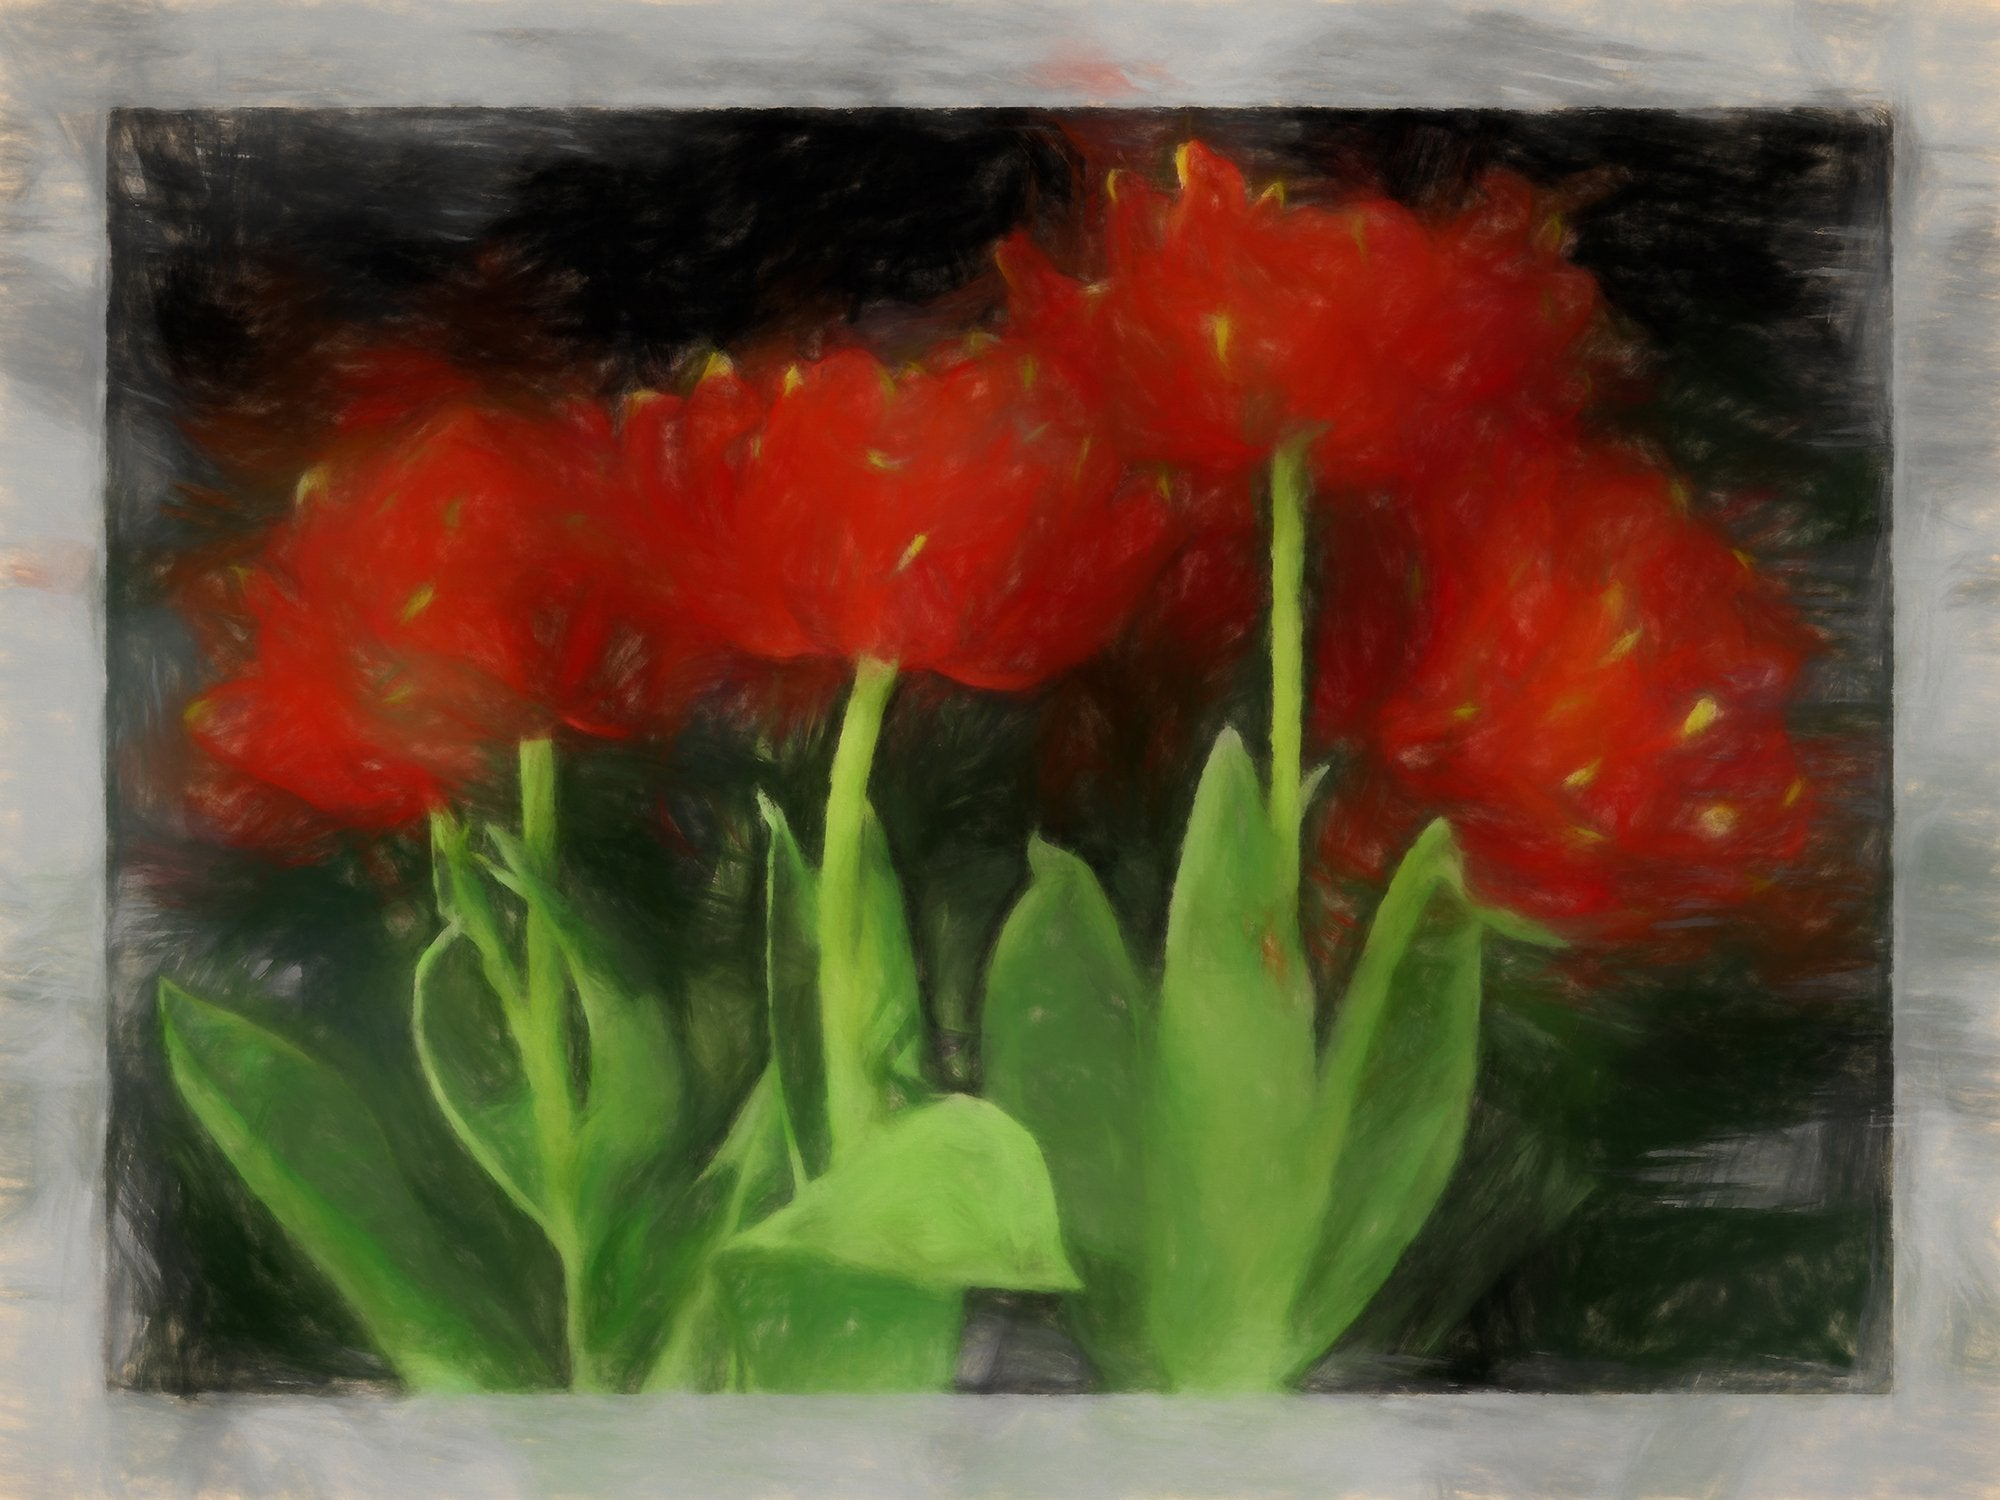 Early Double Tulip 2, Reworked, Series 2